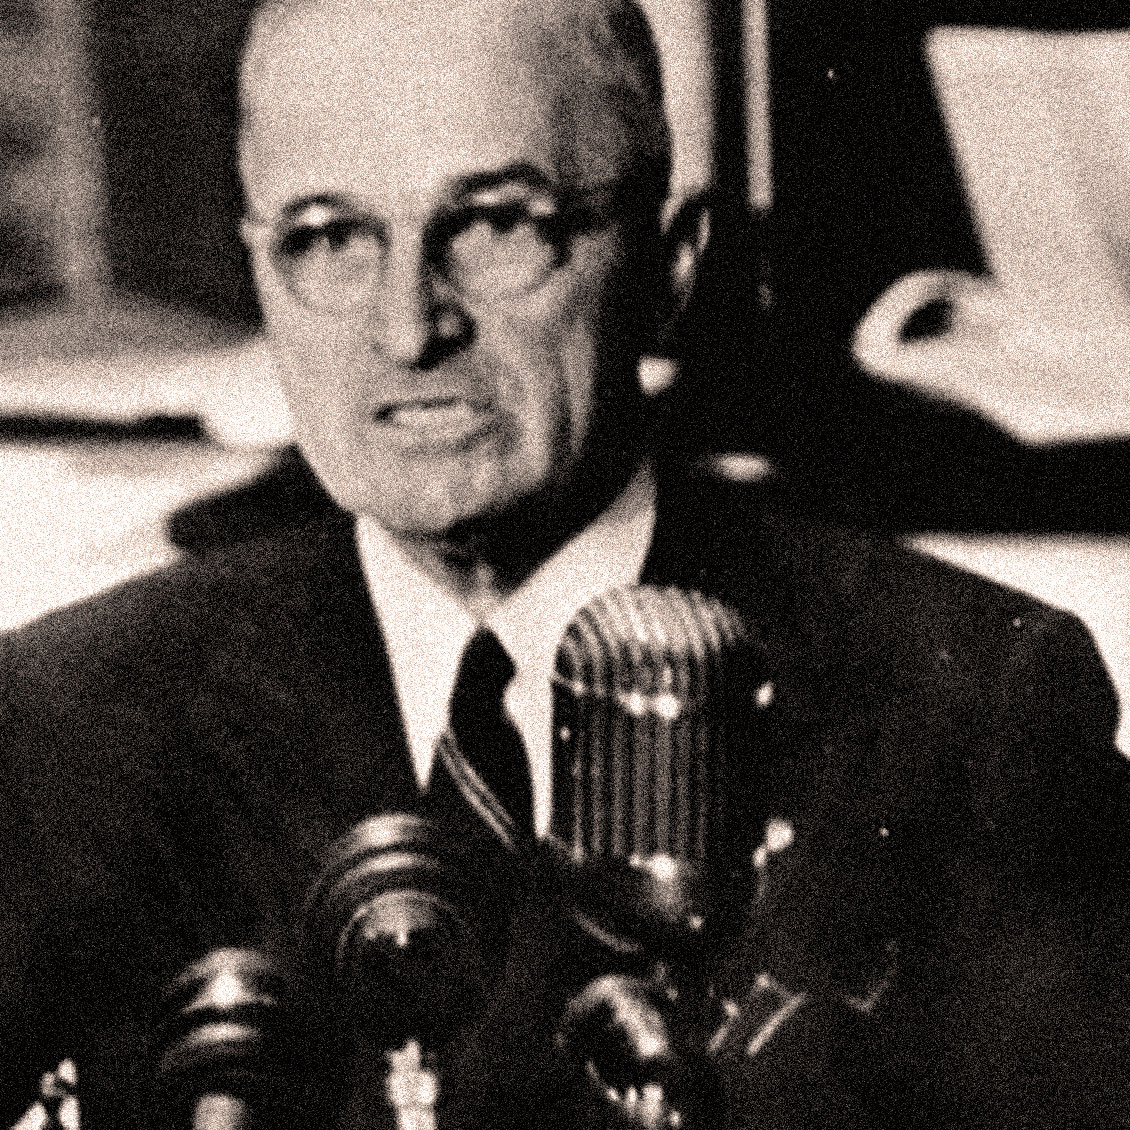 June 20, 1947 – Truman Vetoes Taft-Hartley